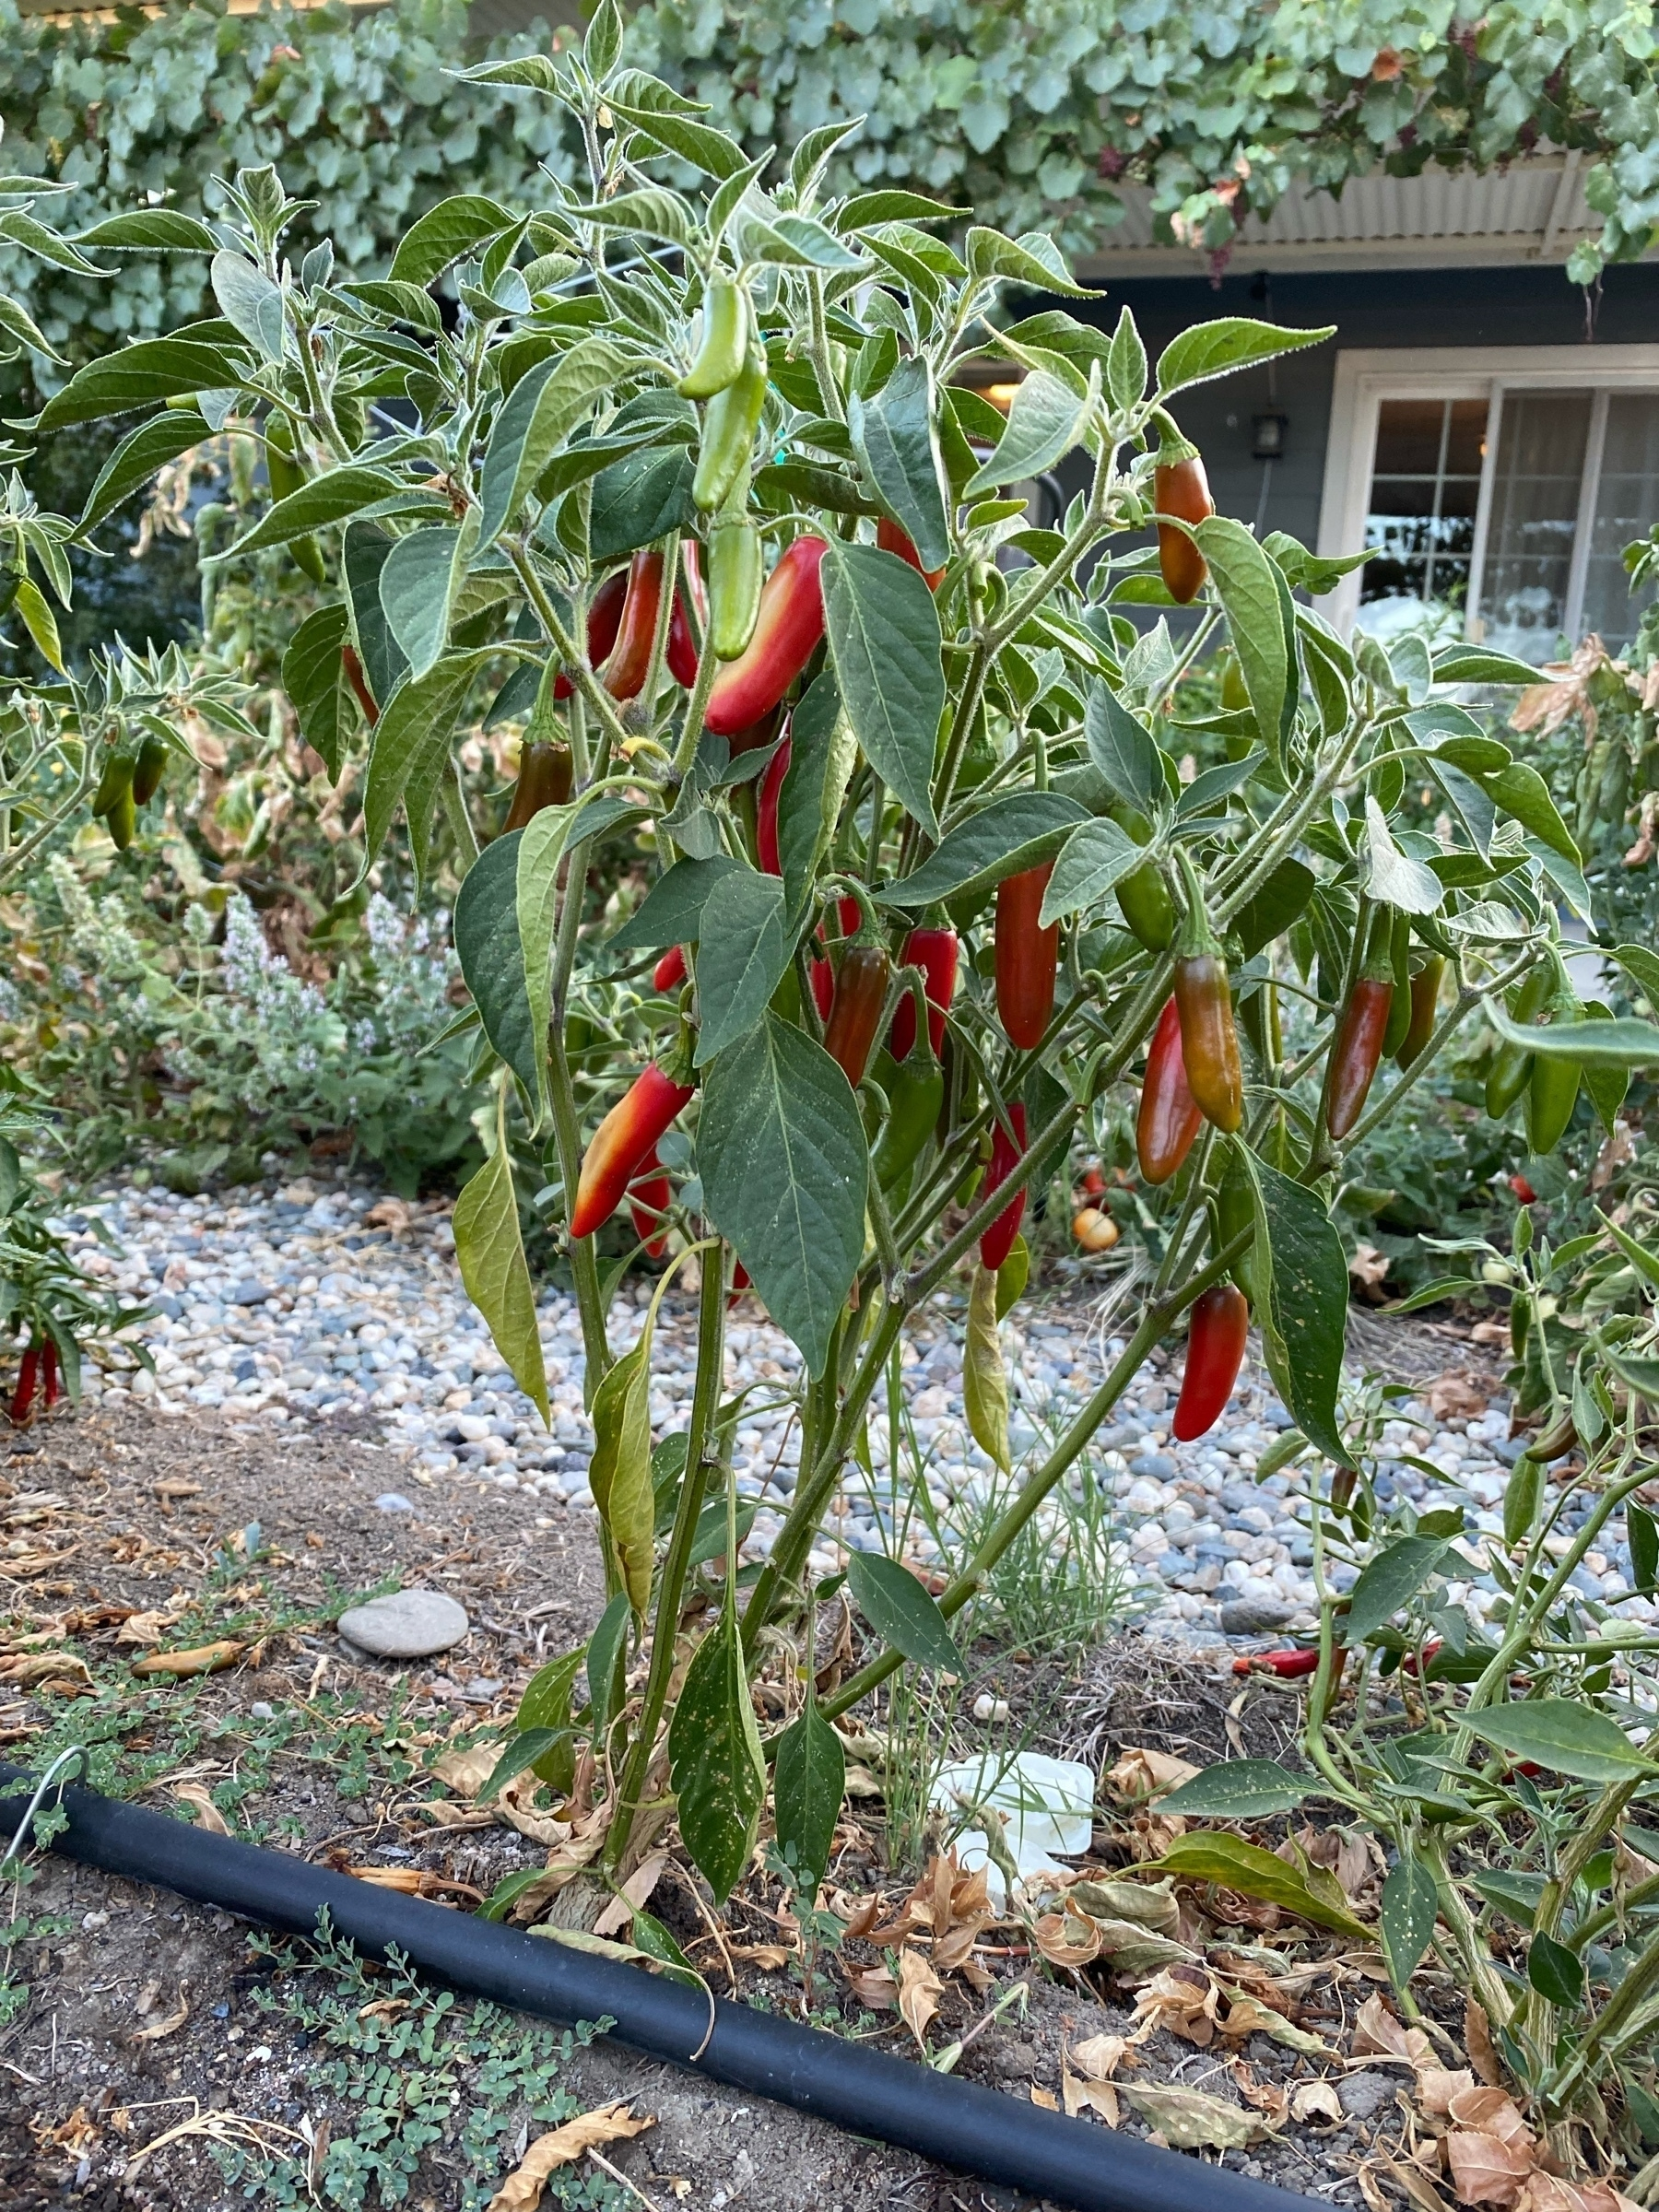 red ripe serrano peppers on a plant